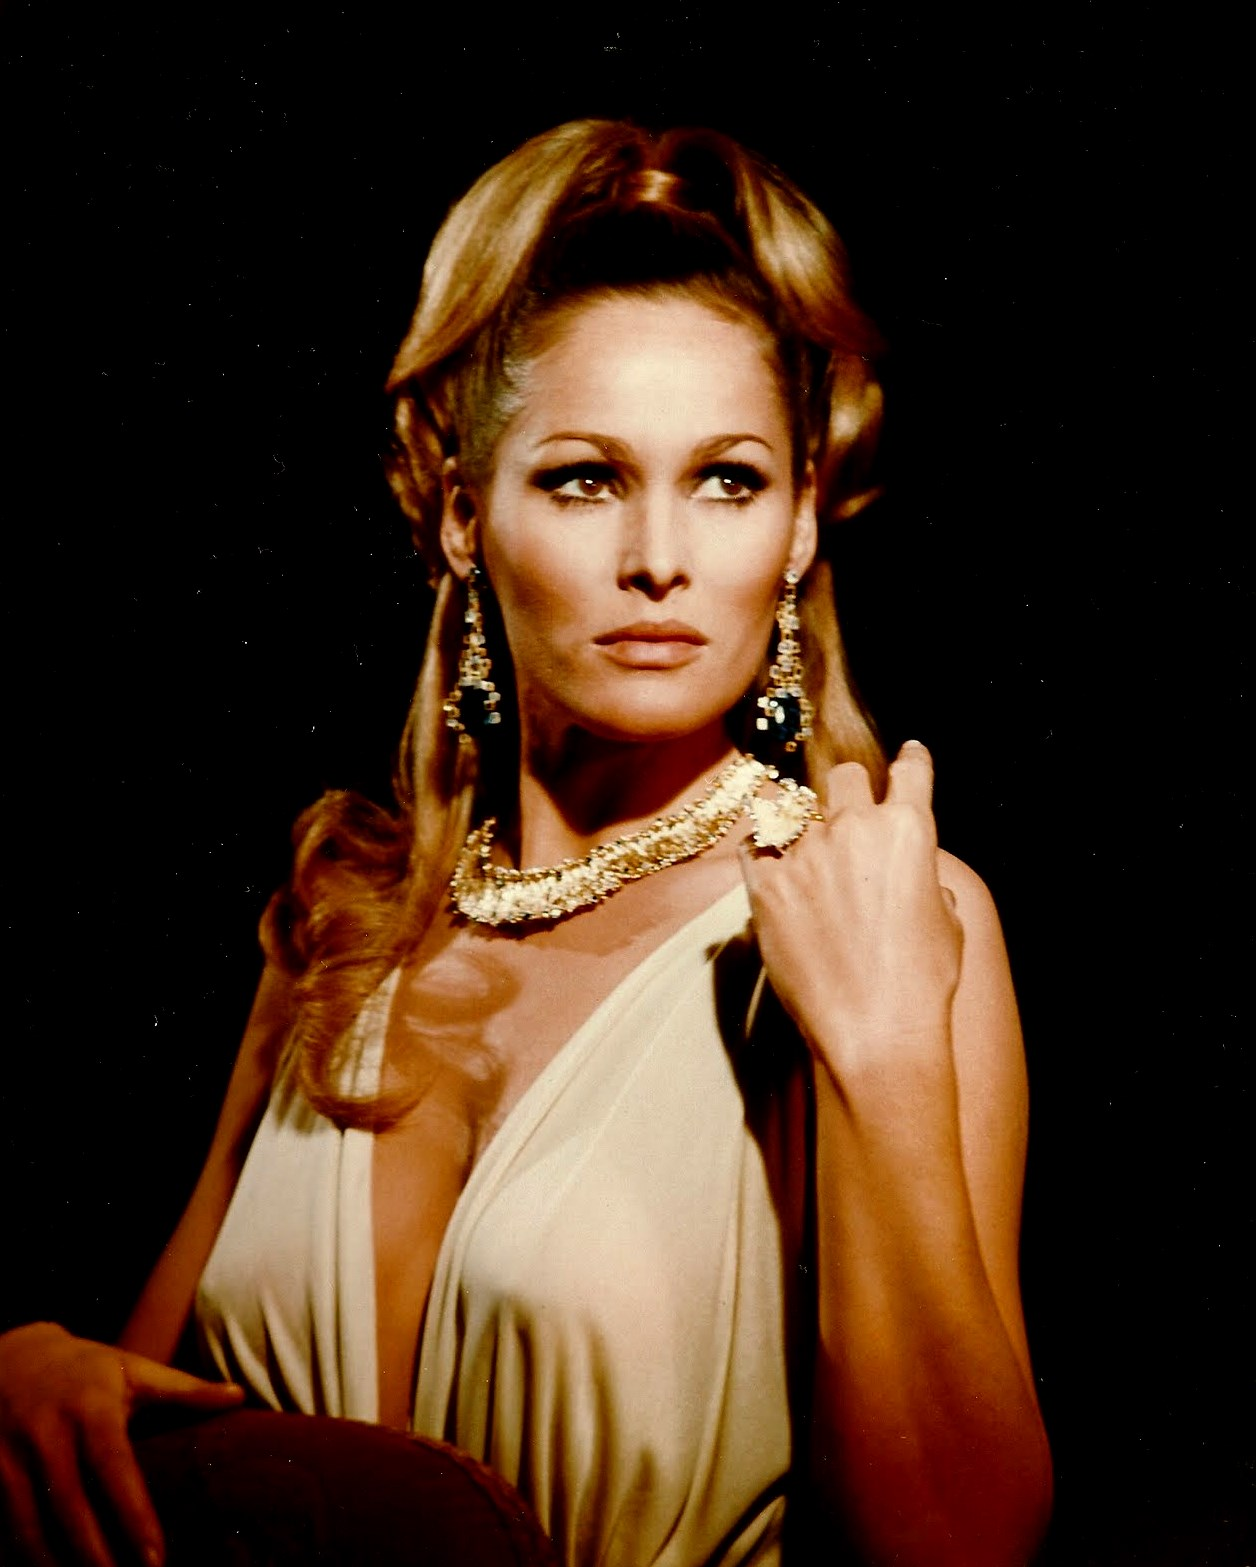 Andress Ursula Andress Peter Cushing Christopher Lee Ursula AndressUrsula Andress Movie